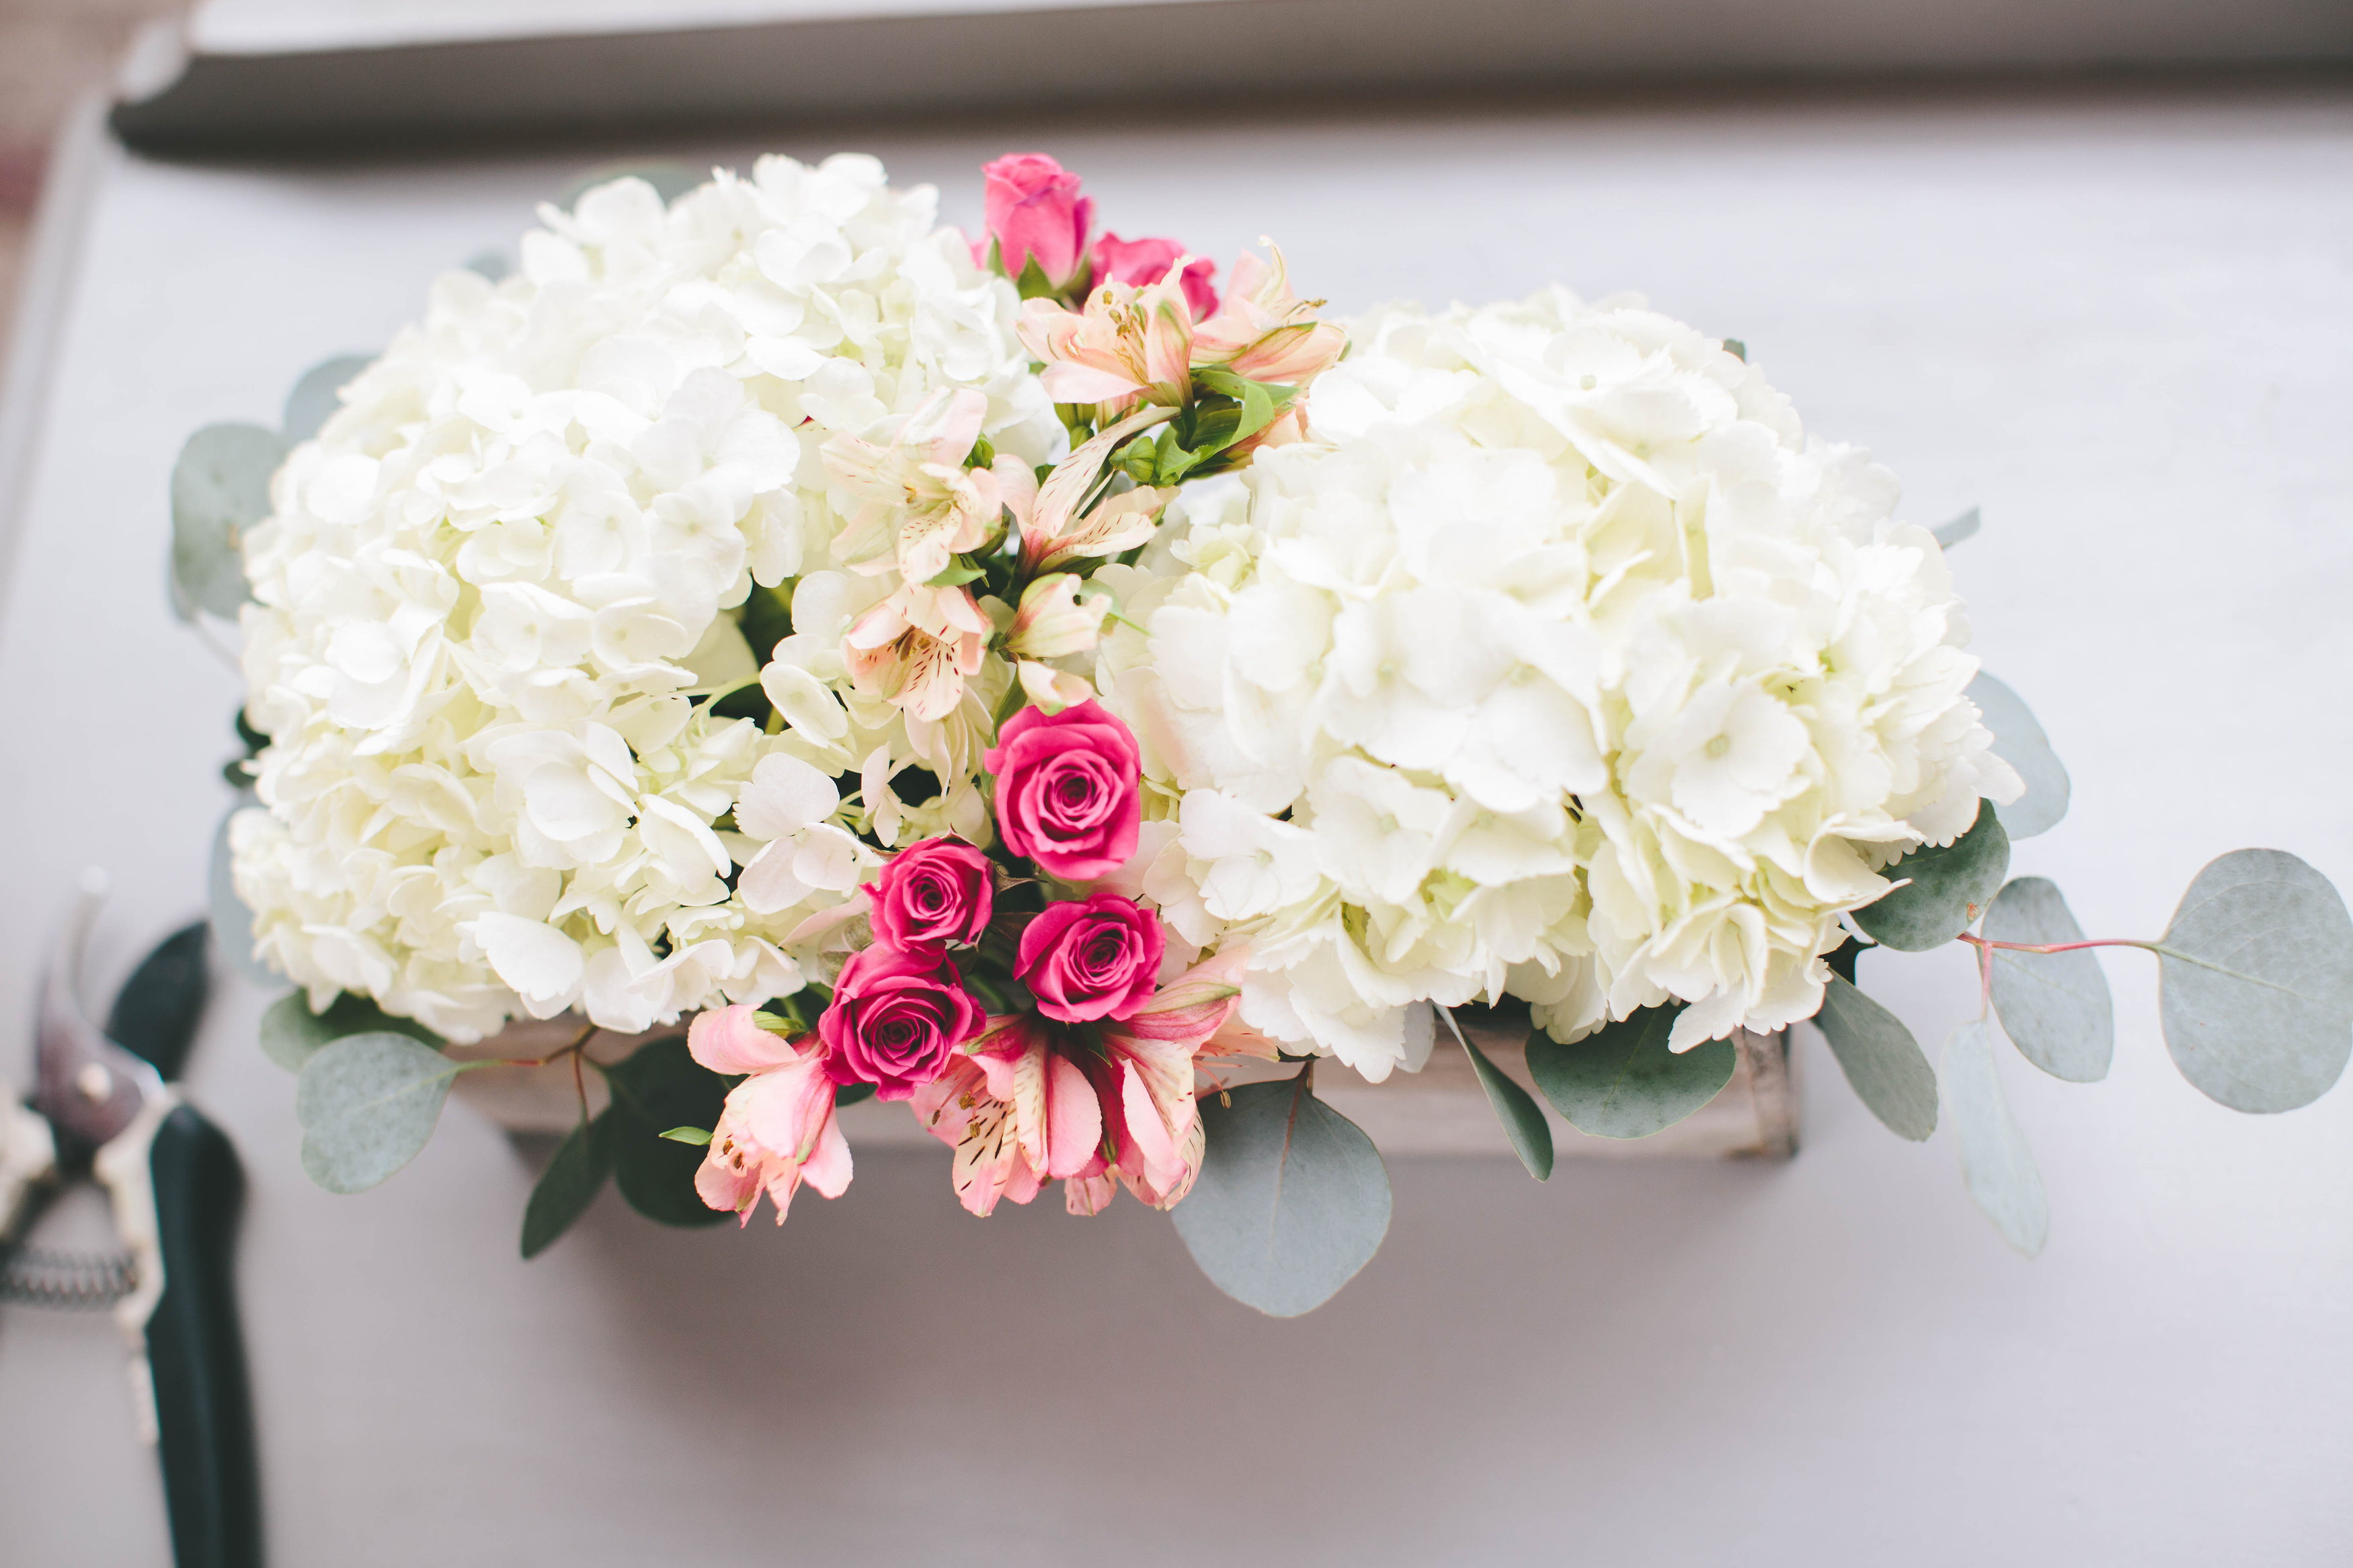 How To A Modern DIY Hydrangea Centerpiece That Anyone Can Make  A Practical Wedding